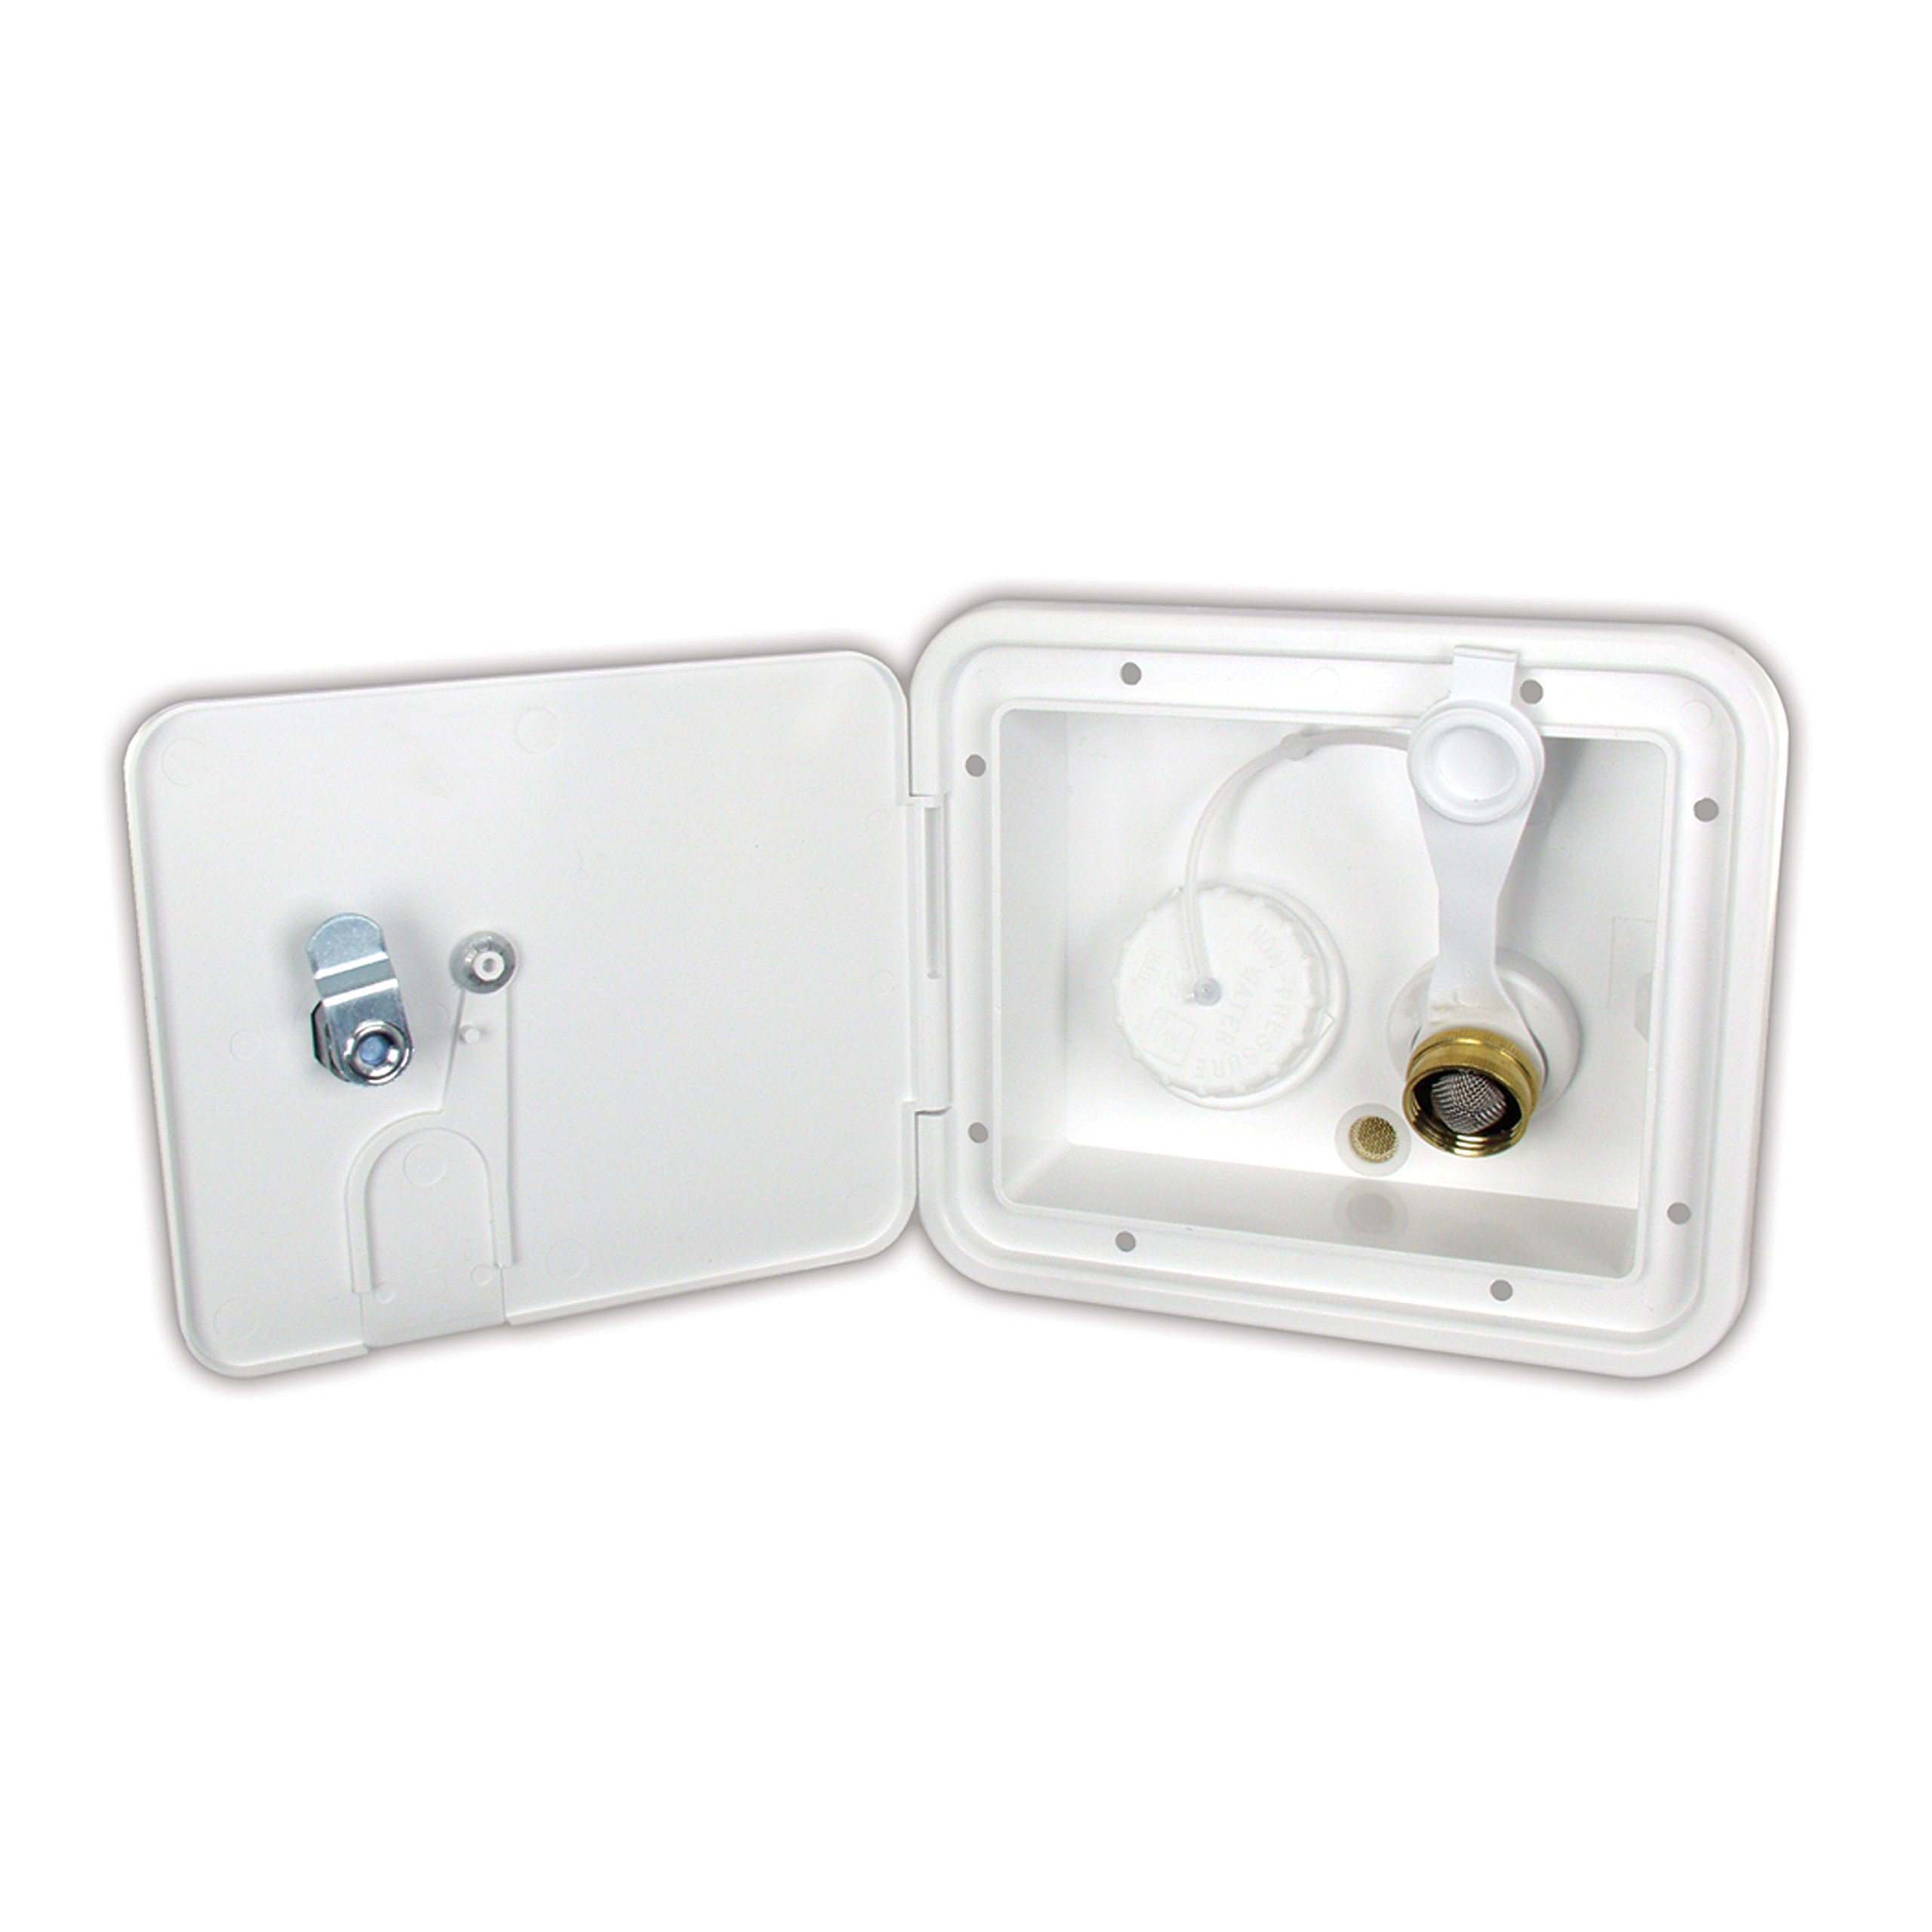 JR Products K7112-6-A City/Gravity Water Hatch by JR Products